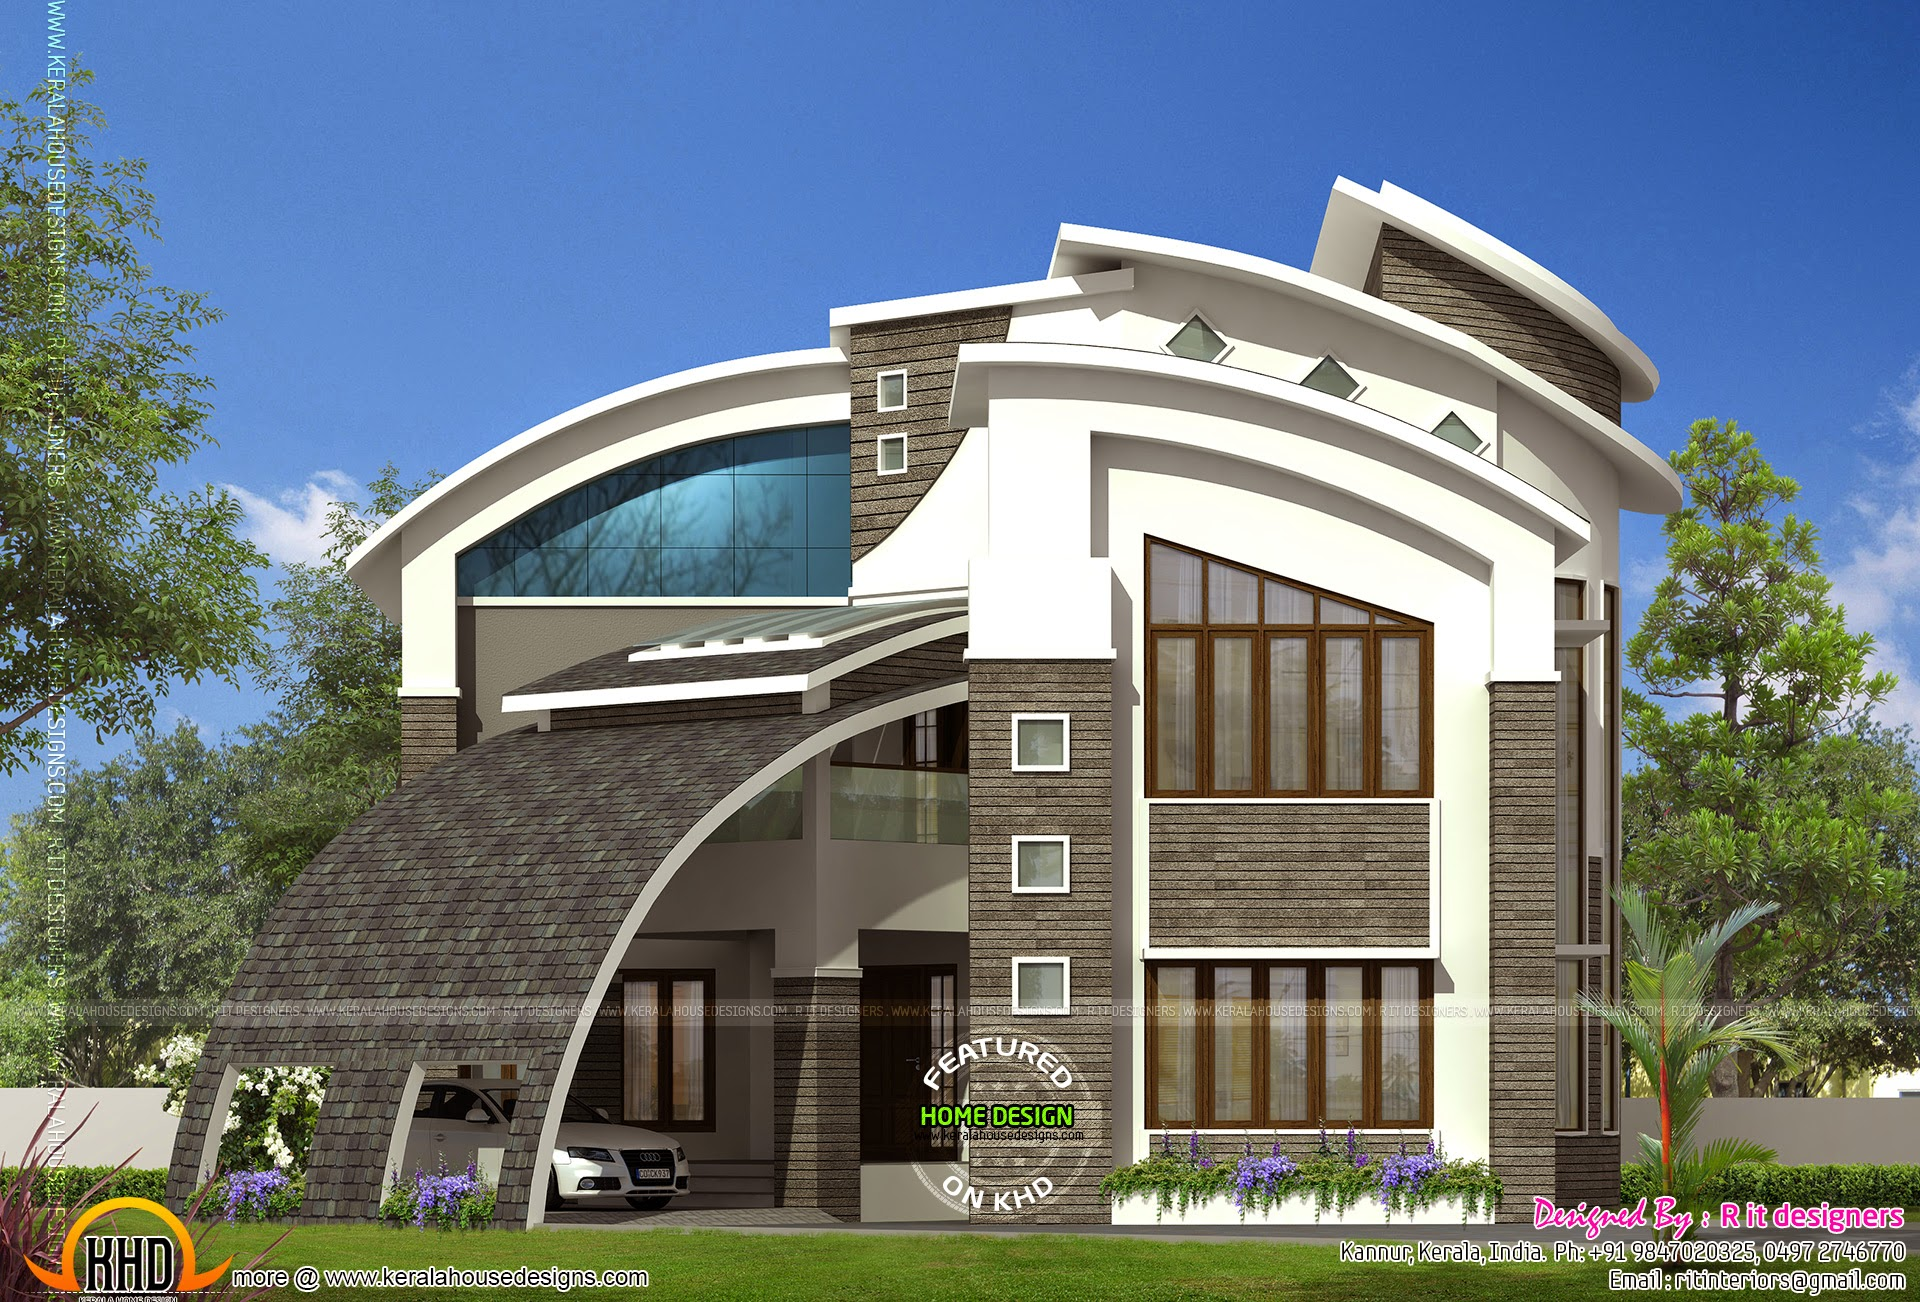 Most modern contemporary house design kerala home design for New house design photos